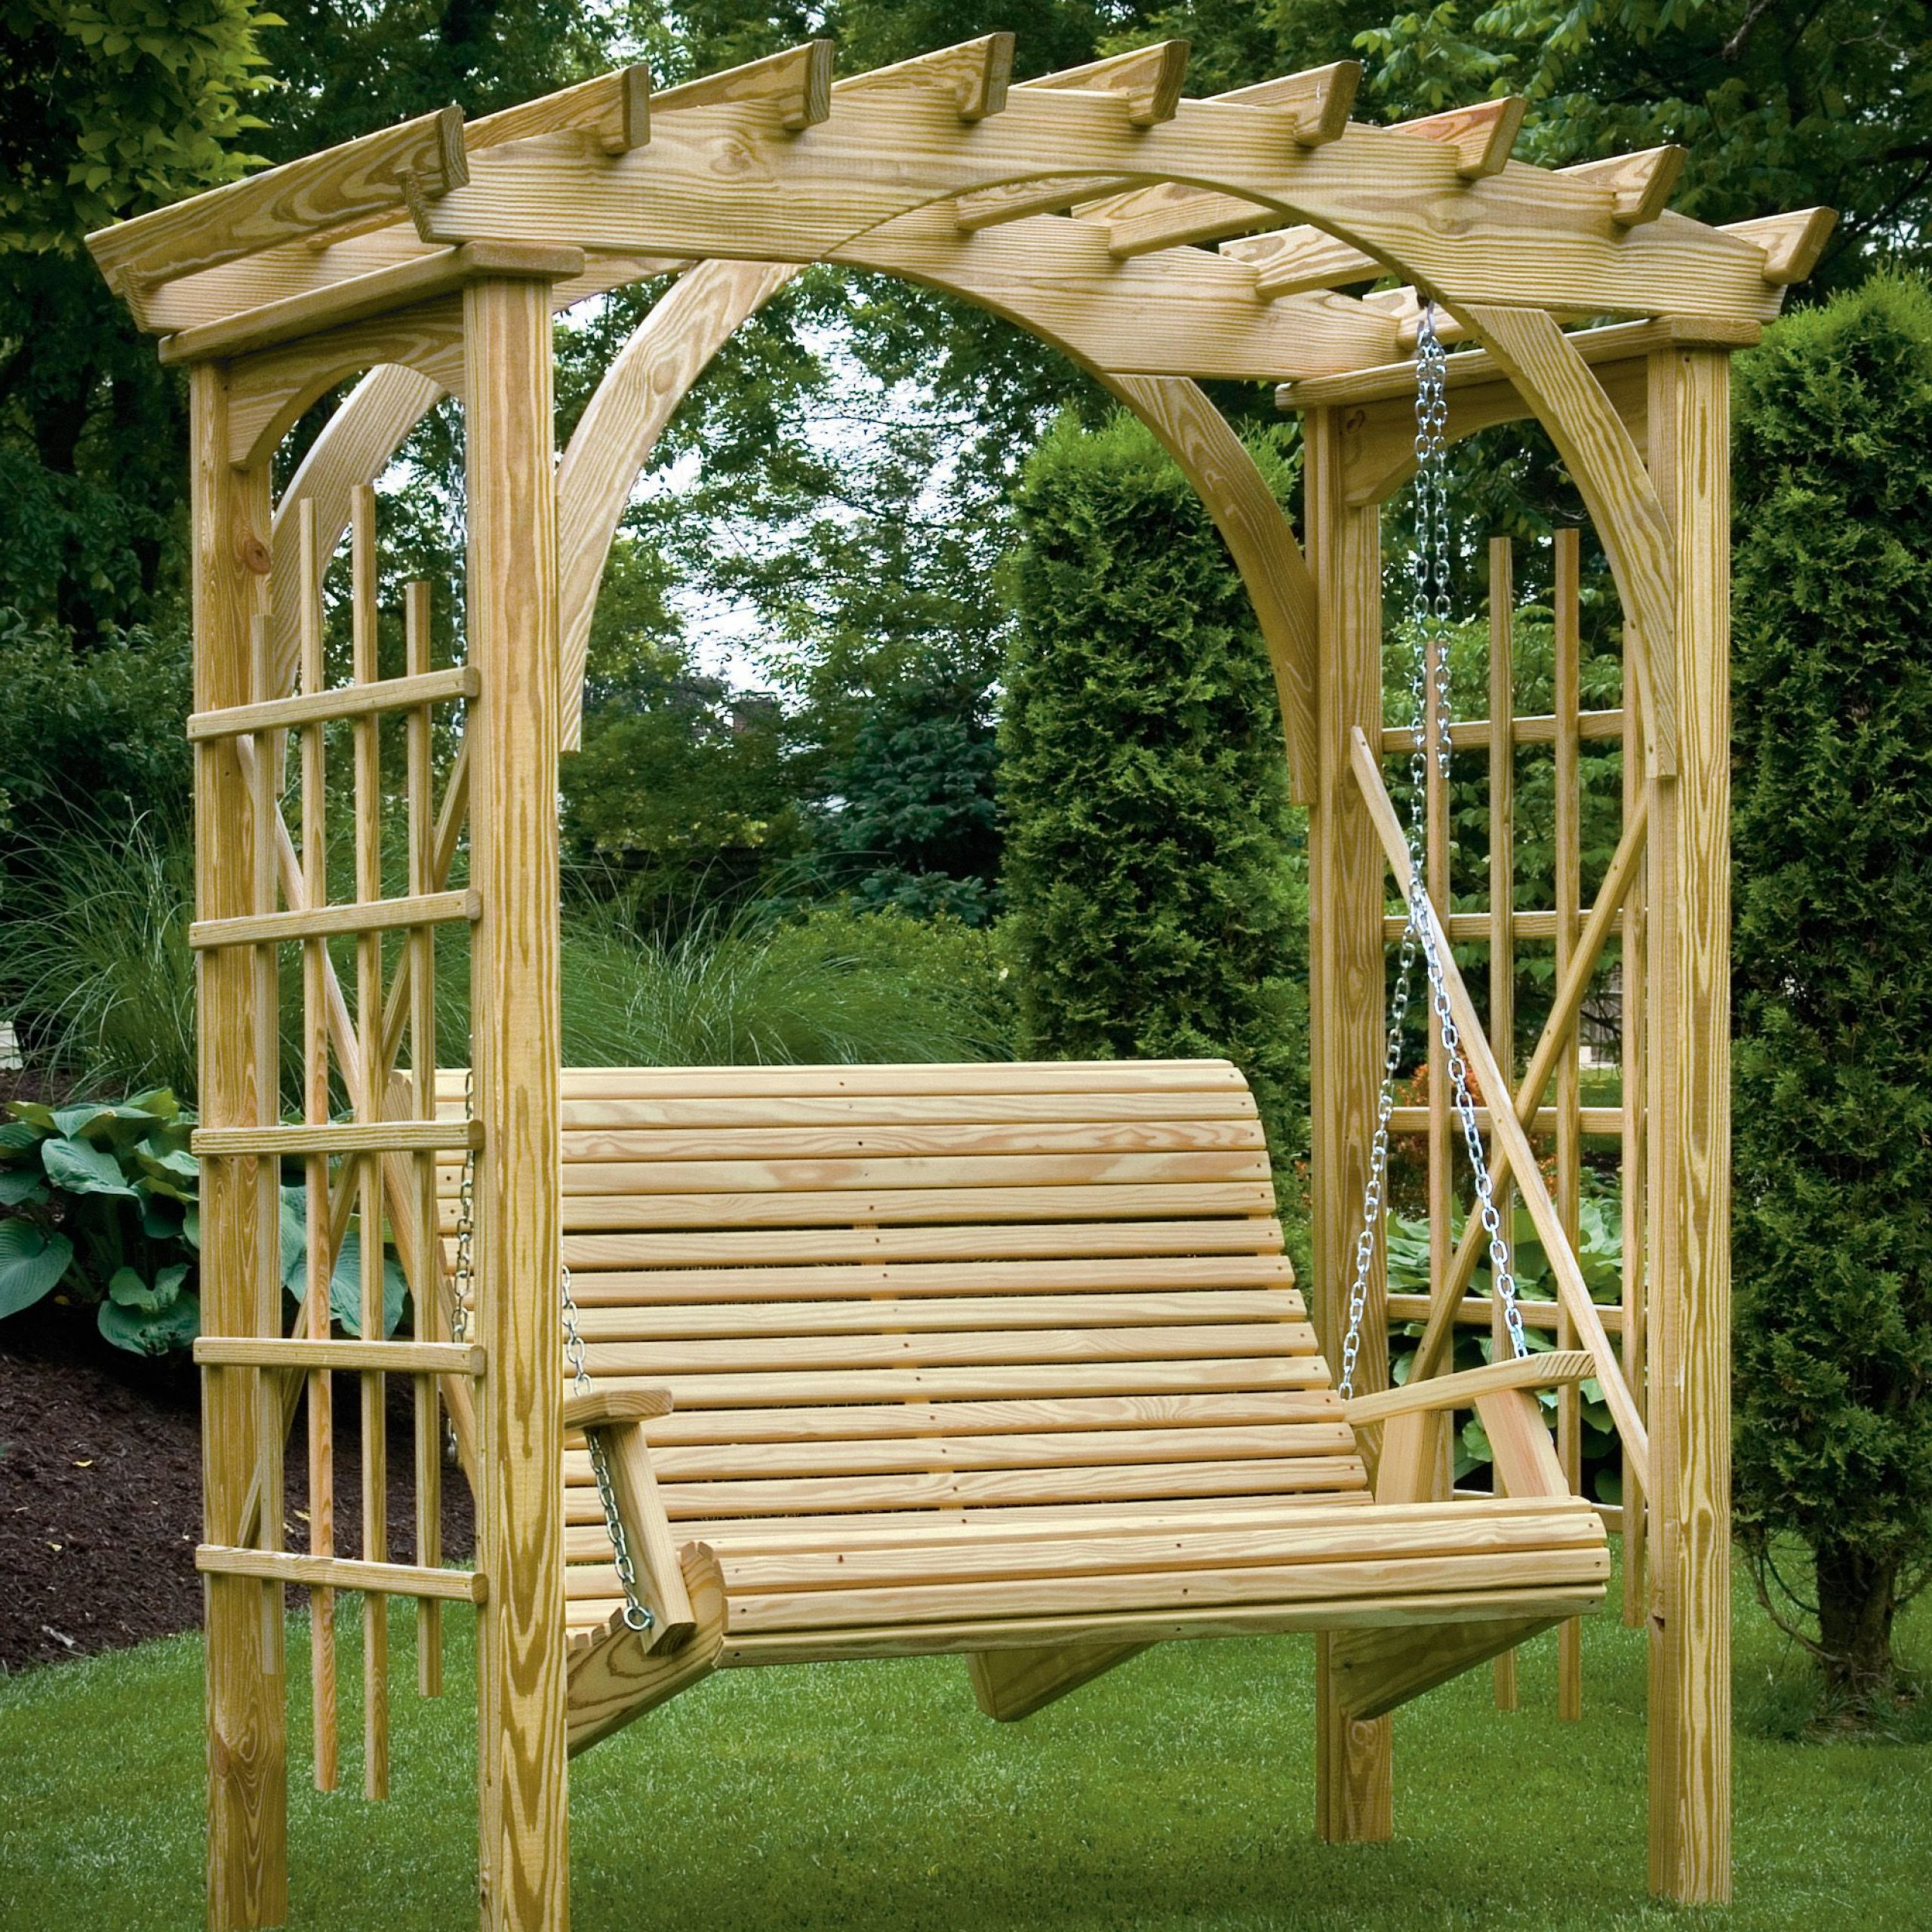 3' X 6' Roman Arch Arbor With Rollback 4' Hanging Swing Regarding Fashionable 3 Seat Pergola Swings (View 9 of 30)